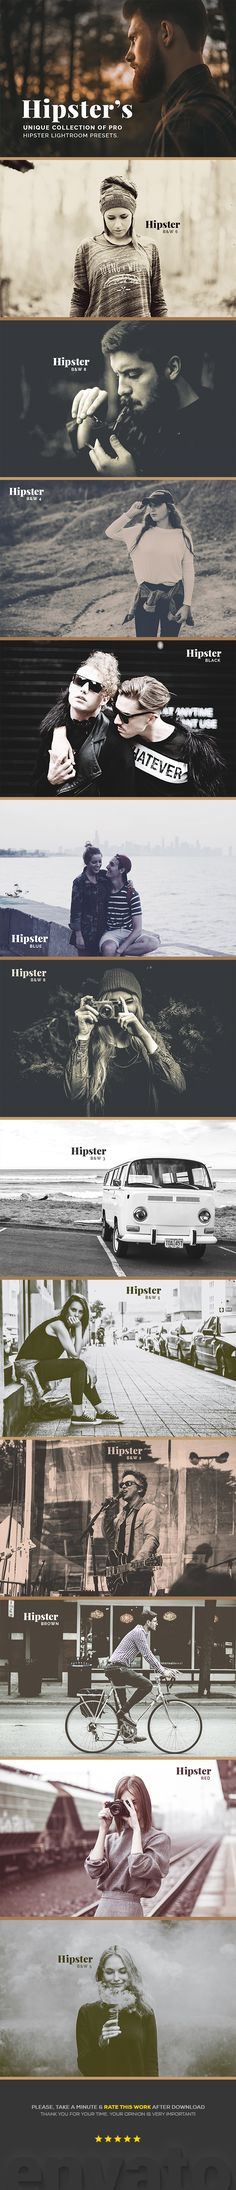 Hipster's Lightroom Presets